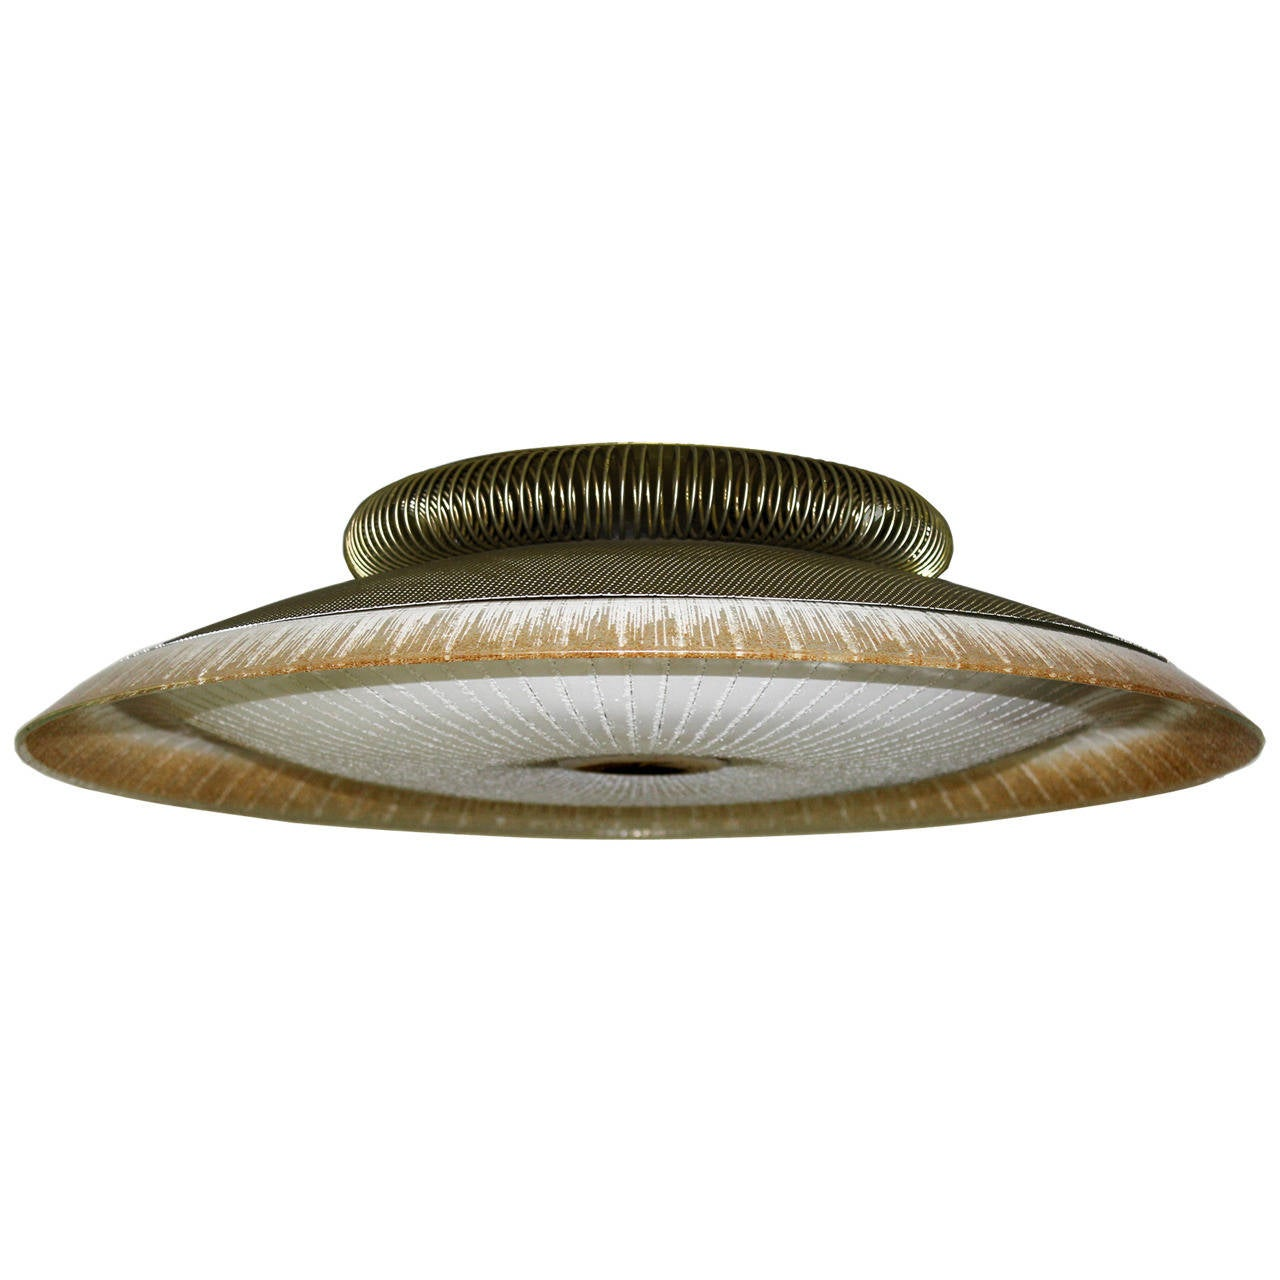 lightolier mid century ceiling fixture with murano glass. Black Bedroom Furniture Sets. Home Design Ideas